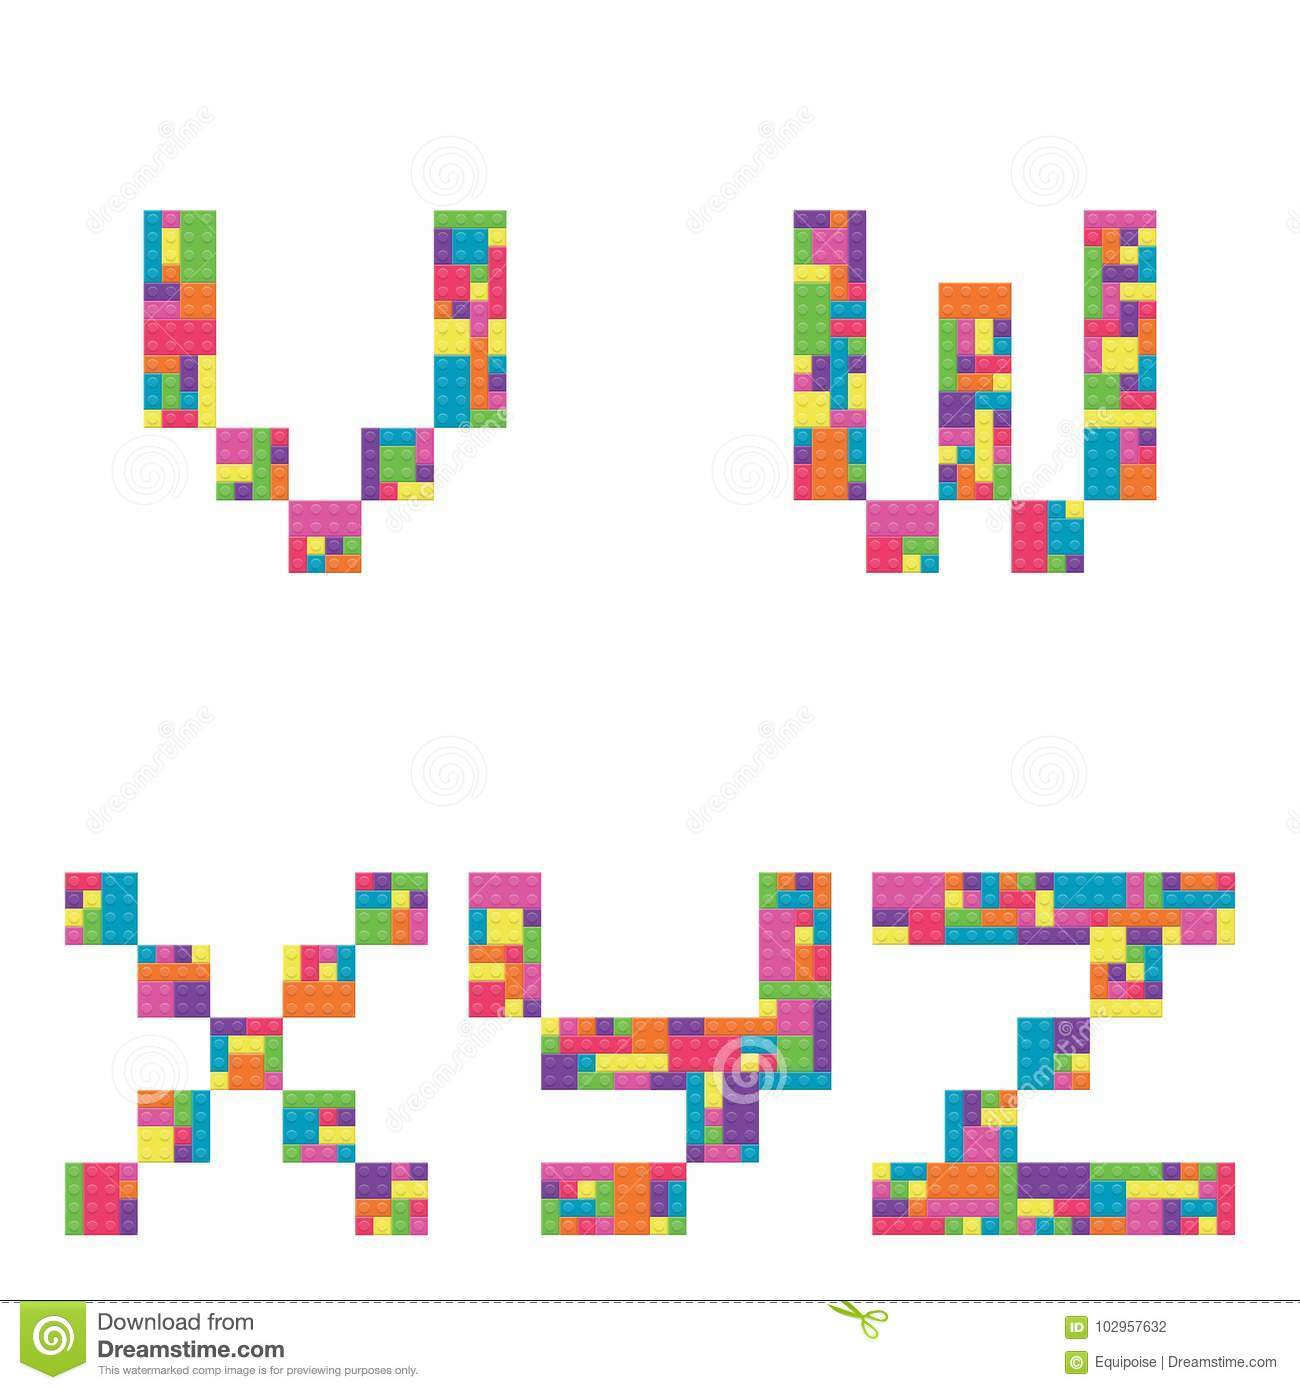 V W X Y Z Alphabet Lowercase Letters From Children Building